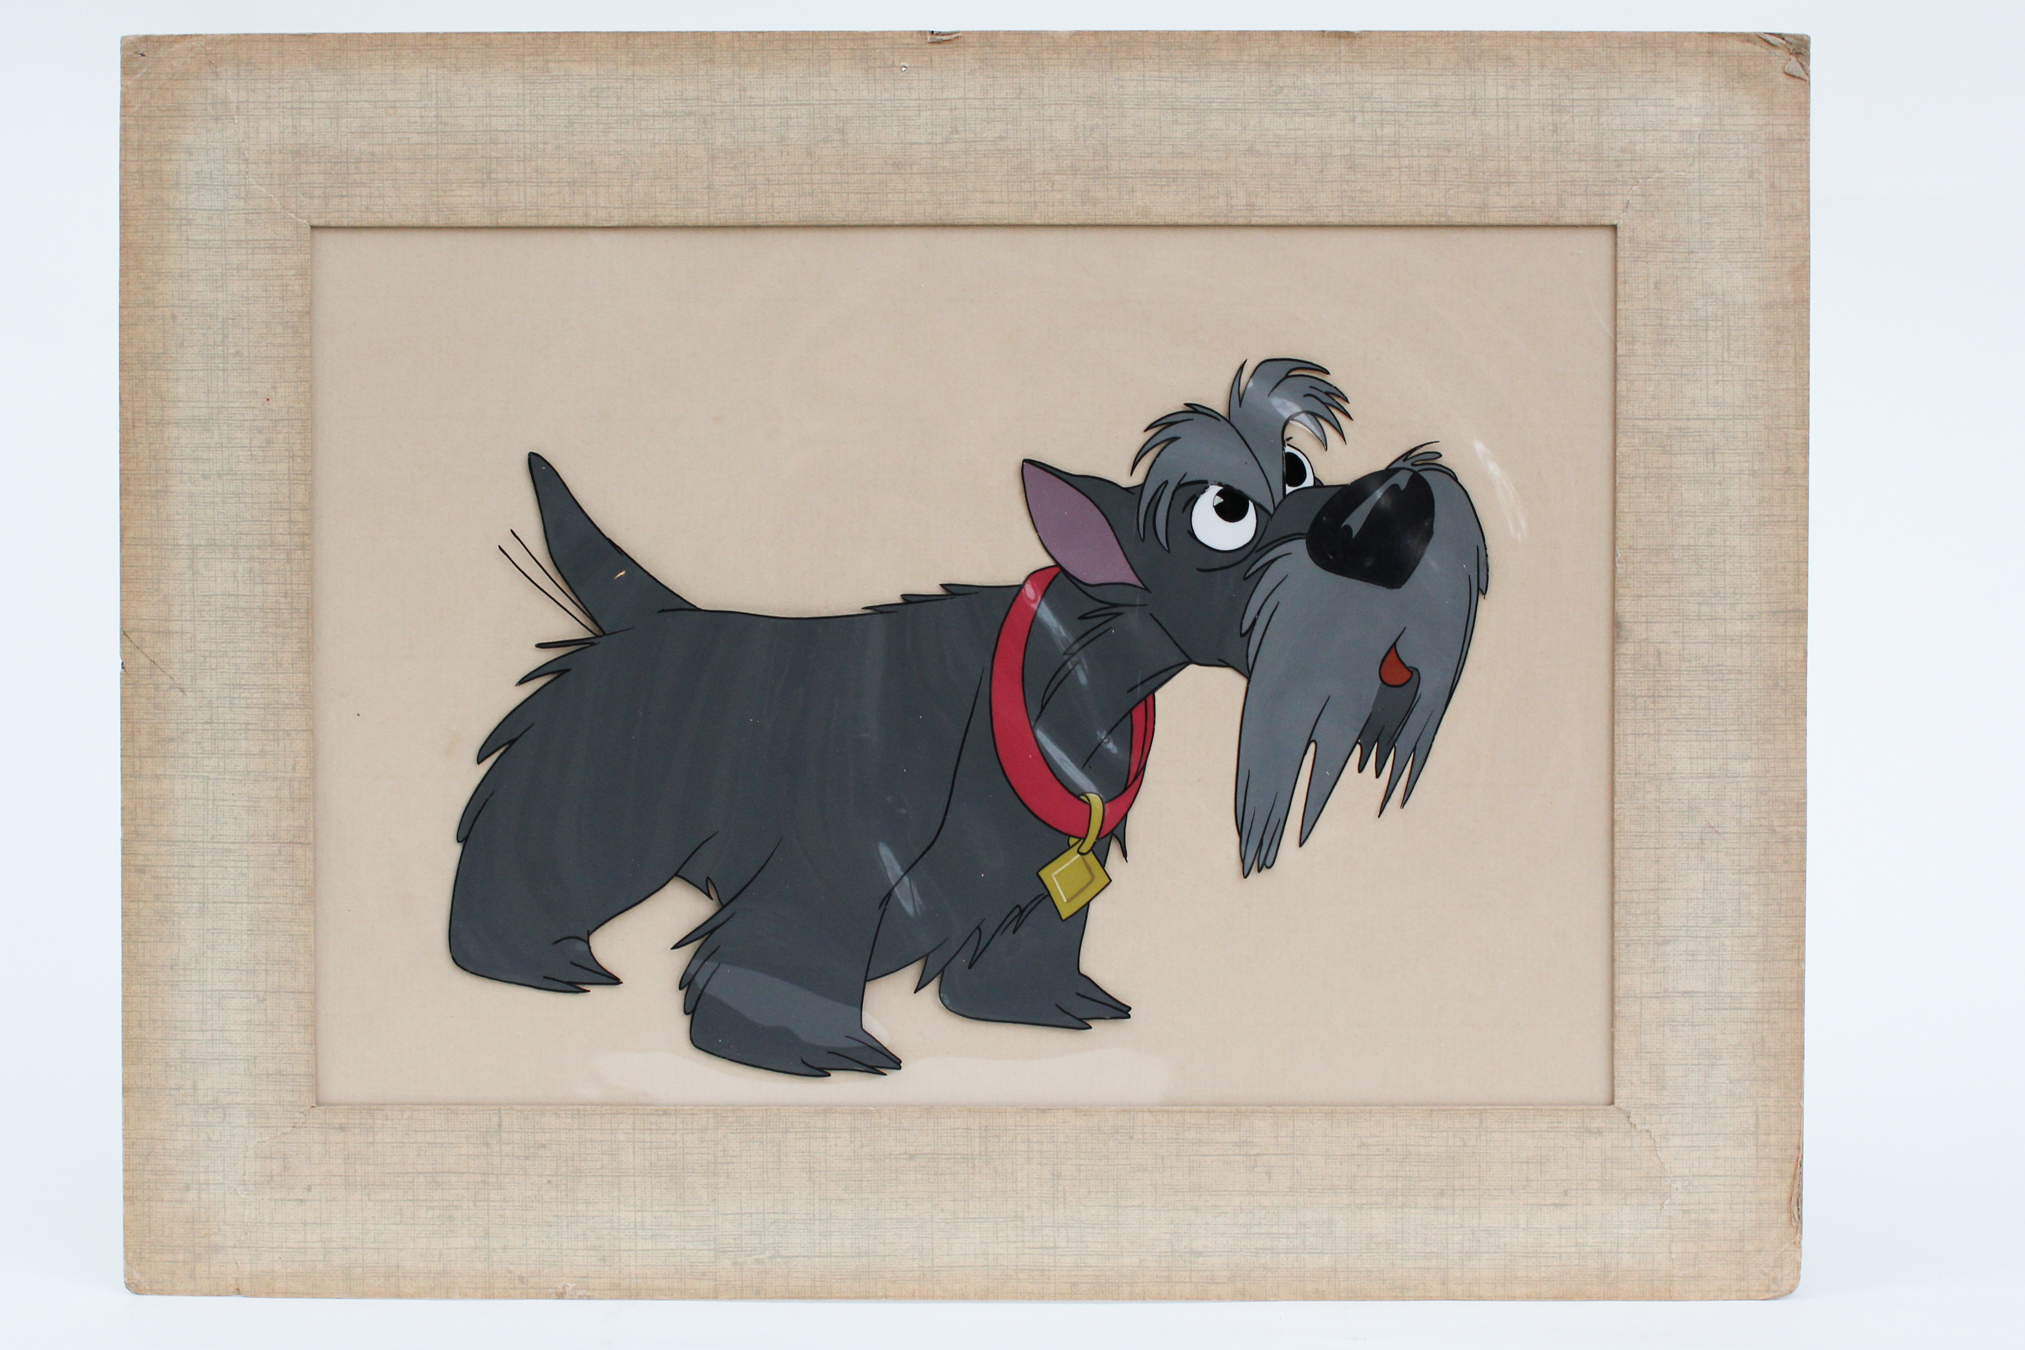 Original Celluloid Drawing For Disney S Lady And The Tramp Witherell S Auction House